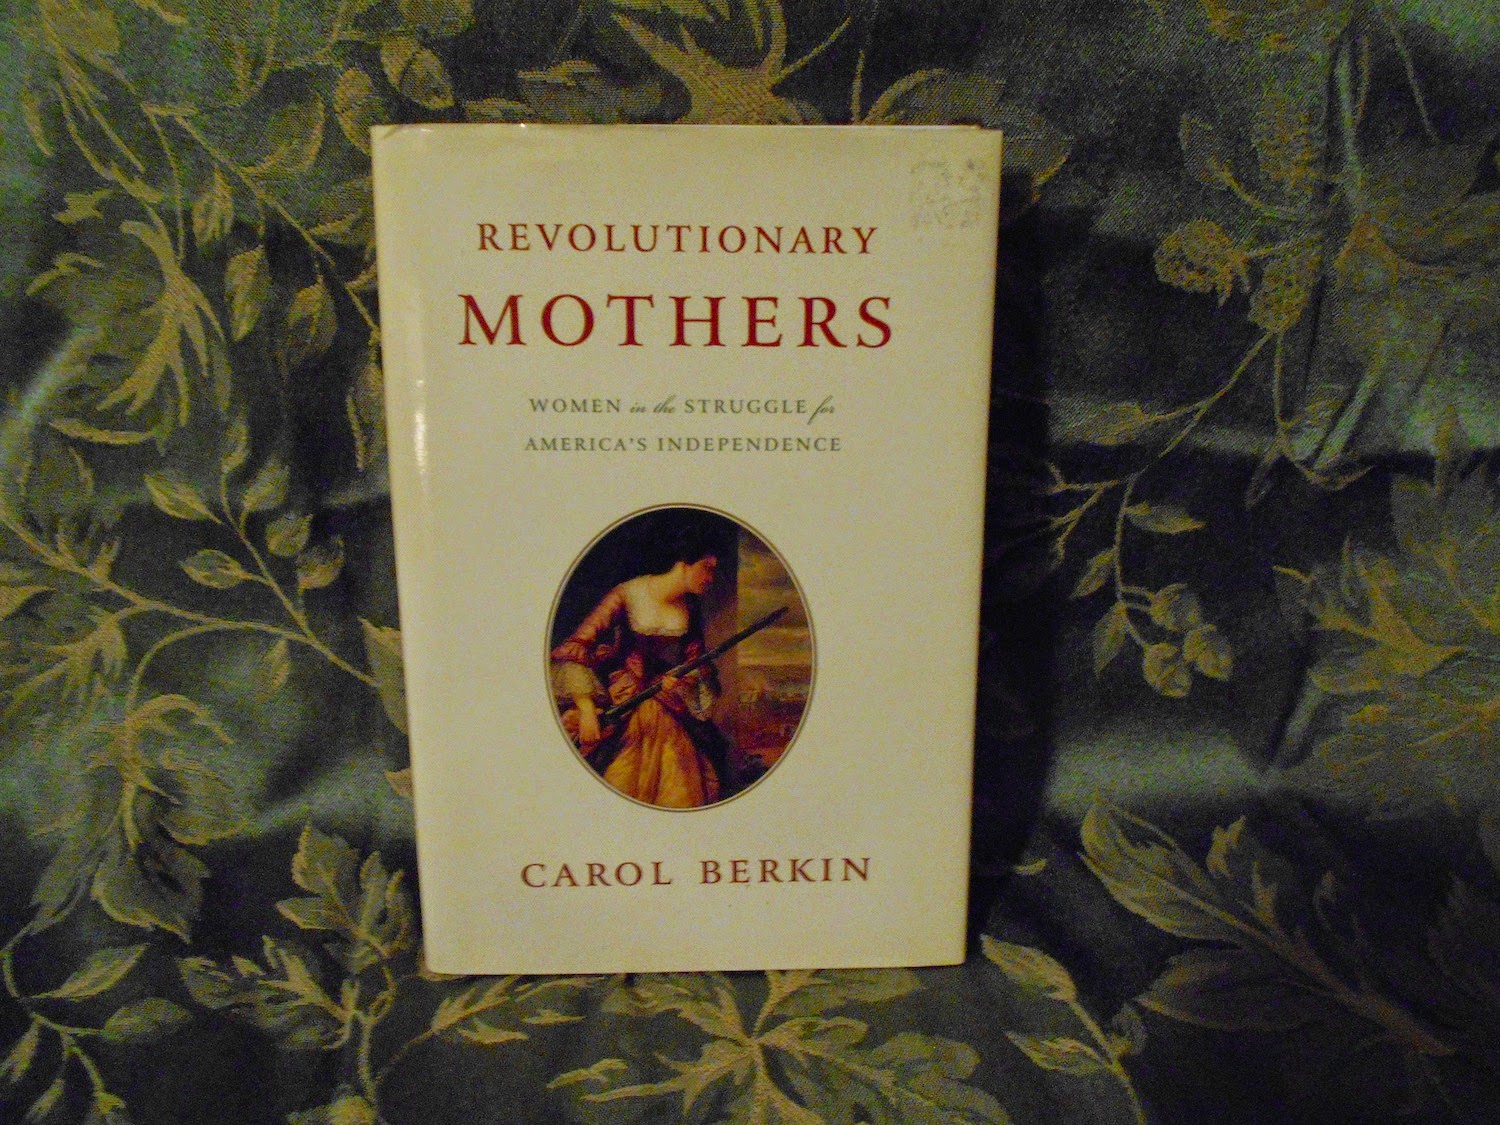 "revolutionary mothers carol berkin thesis Carol berkin clearly states her thesis in the introduction of revolutionary mothers ""despite the absence of radical changes in gender ideology and gender roles for most women, the revolution did lend legitimacy to new ideas about women's capacities and their proper roles"" (berkin 2005) in two thousand and fourteen it is."